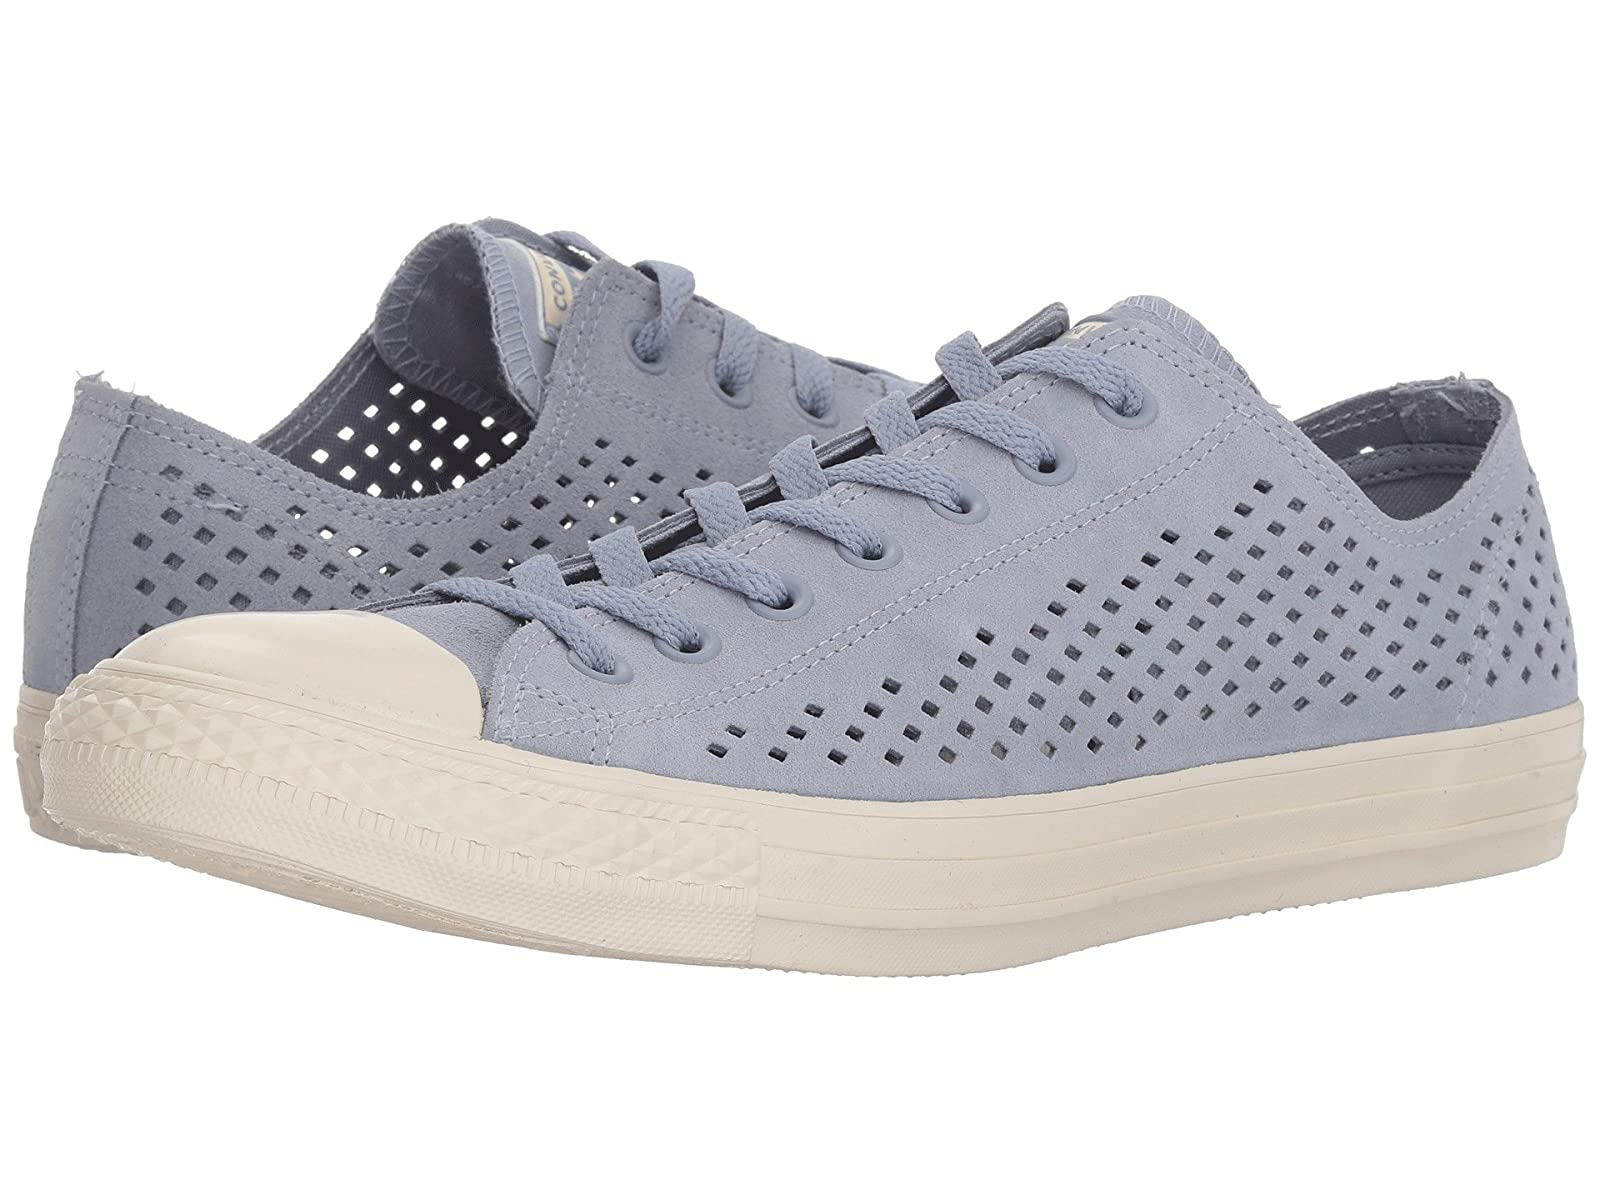 Converse Chuck Taylor® All Star® Ox - Perf SuedeCheap and distinctive eye-catching shoes